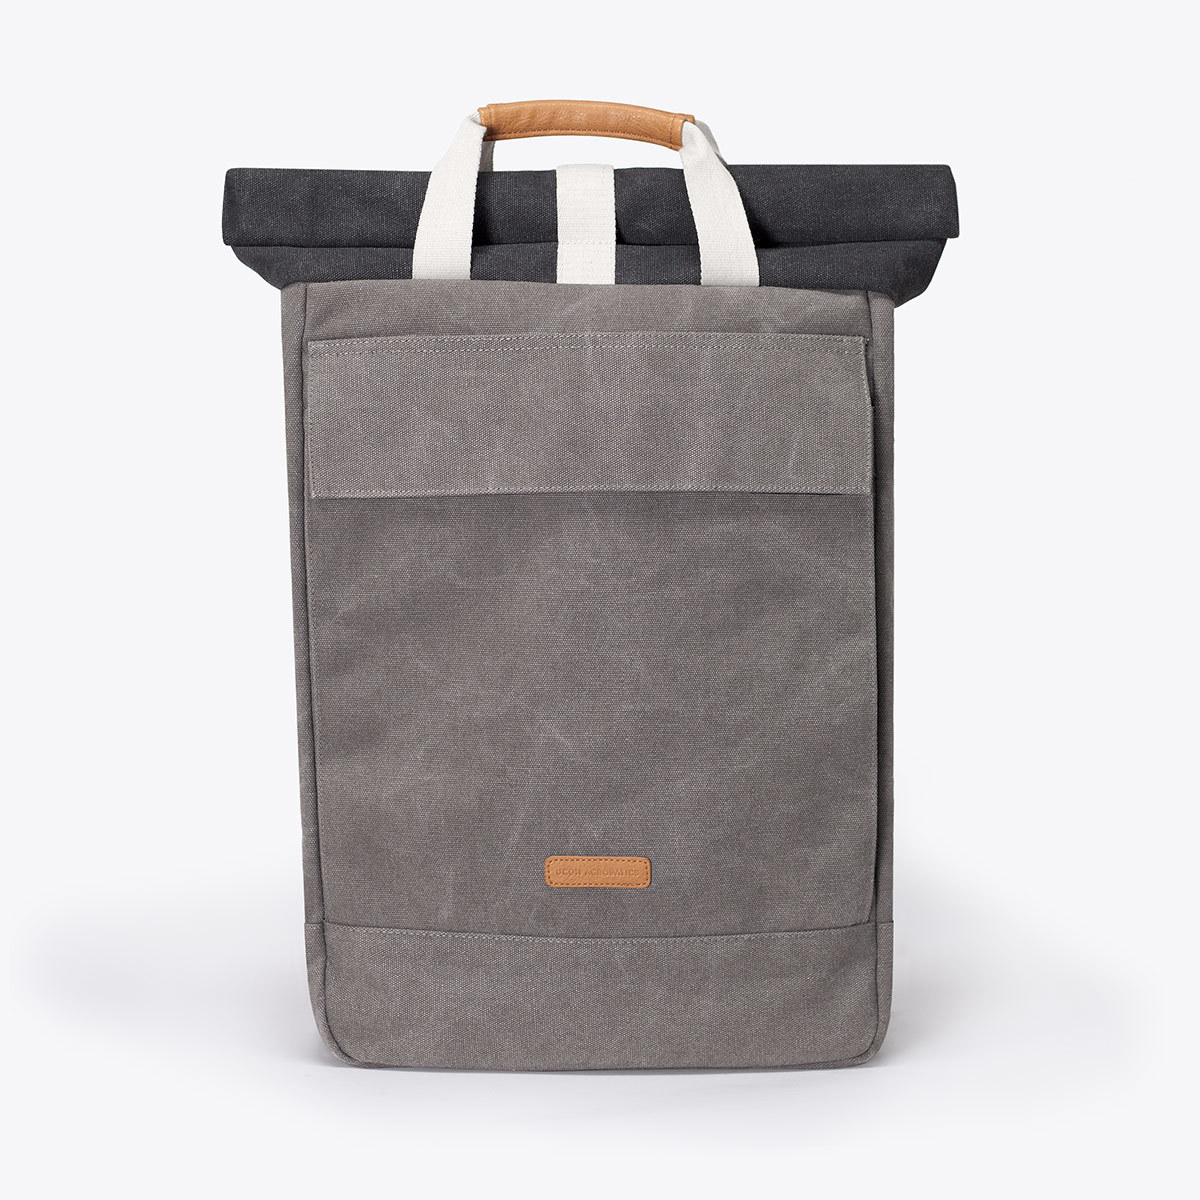 UA_Colin-Backpack_Original-Series_Grey_01.jpg